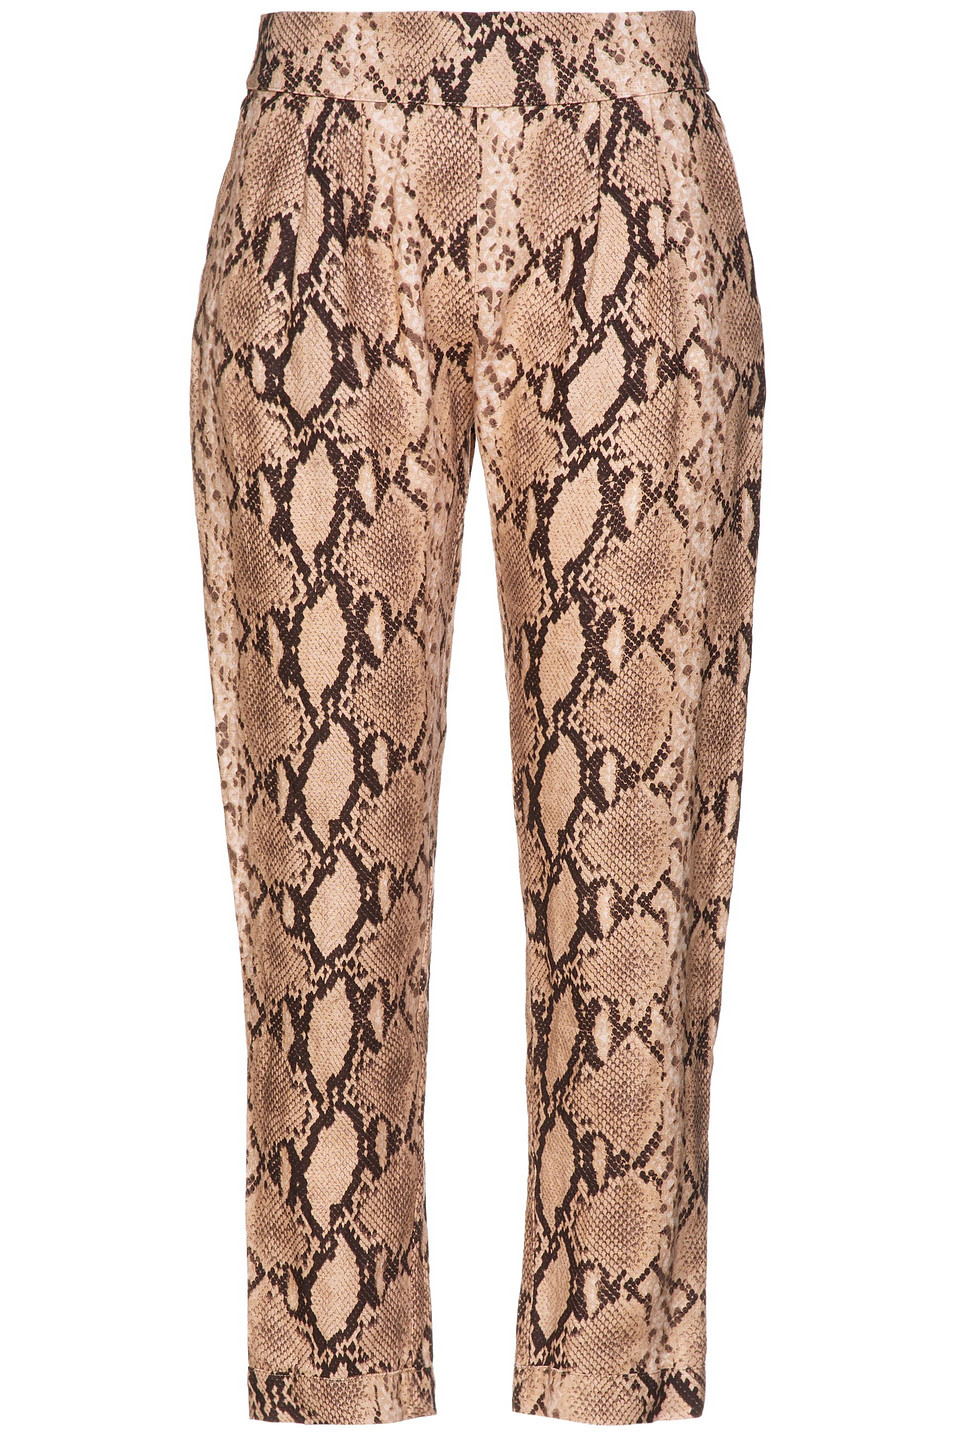 Enza Costa | Enza Costa Woman Cropped Snake-print Linen Tapered Pants Animal Print | Clouty